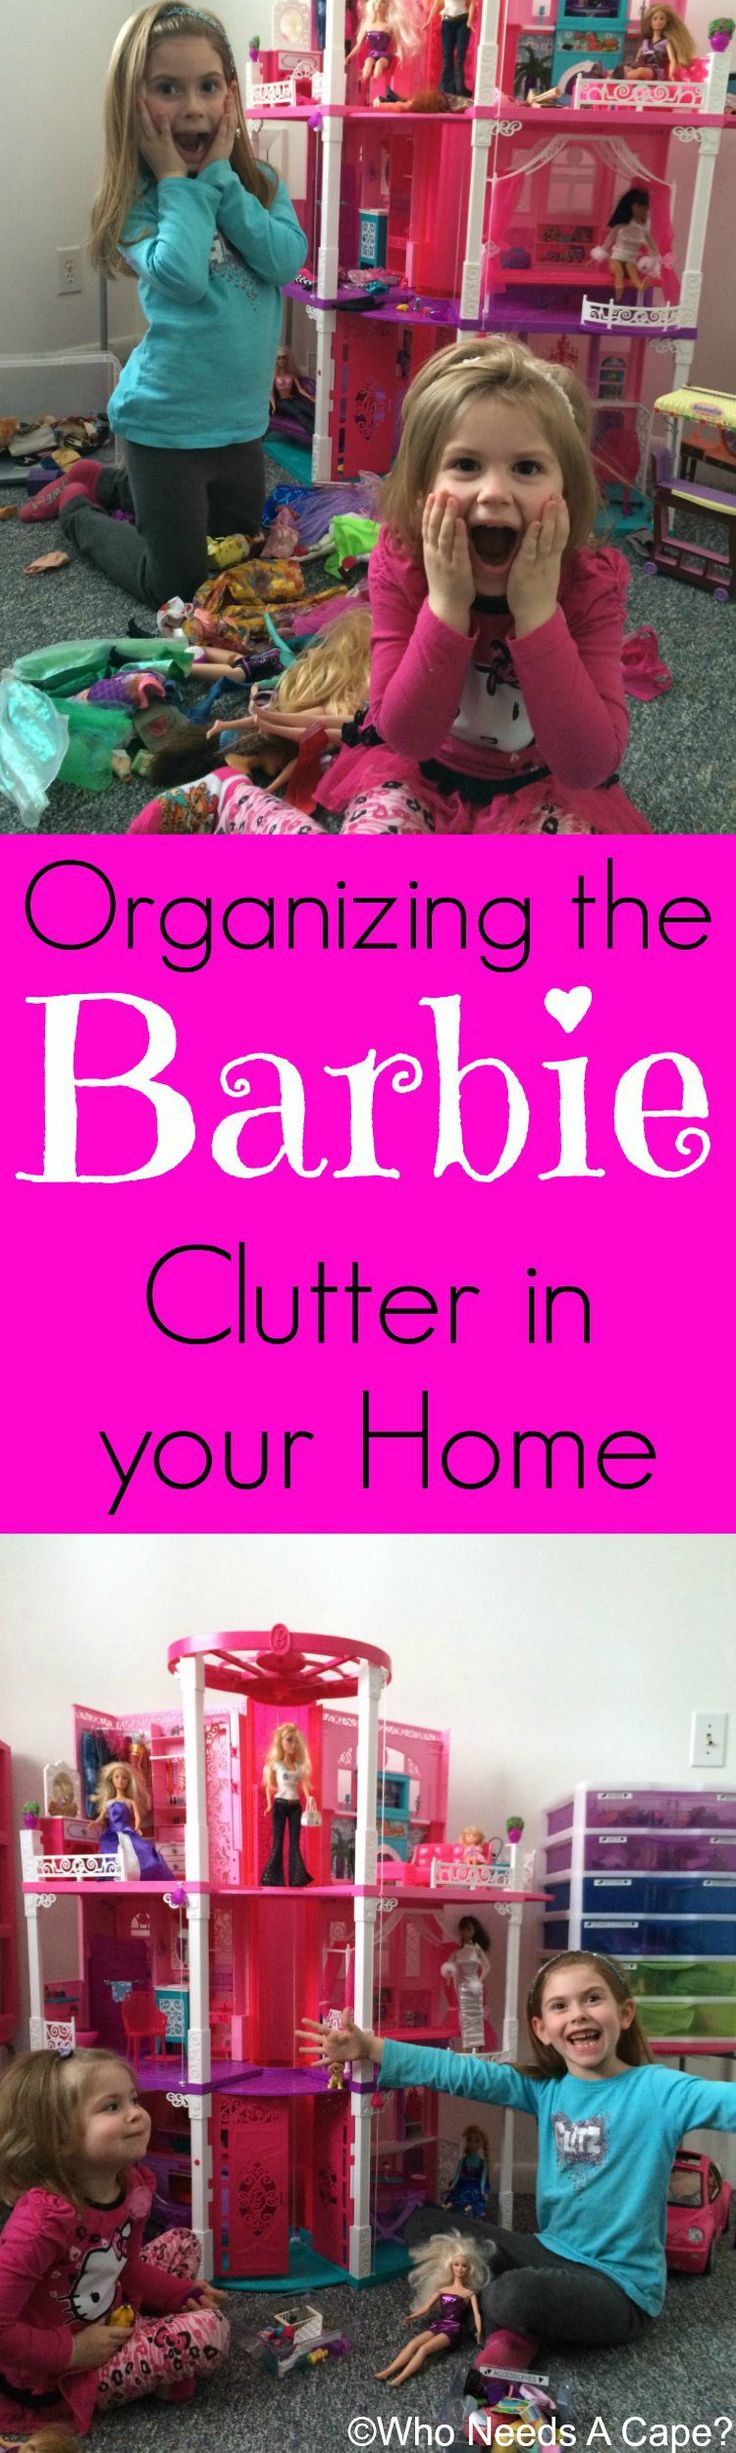 Organizing the Barbie Clutter in your Home | Who Needs A Cape?